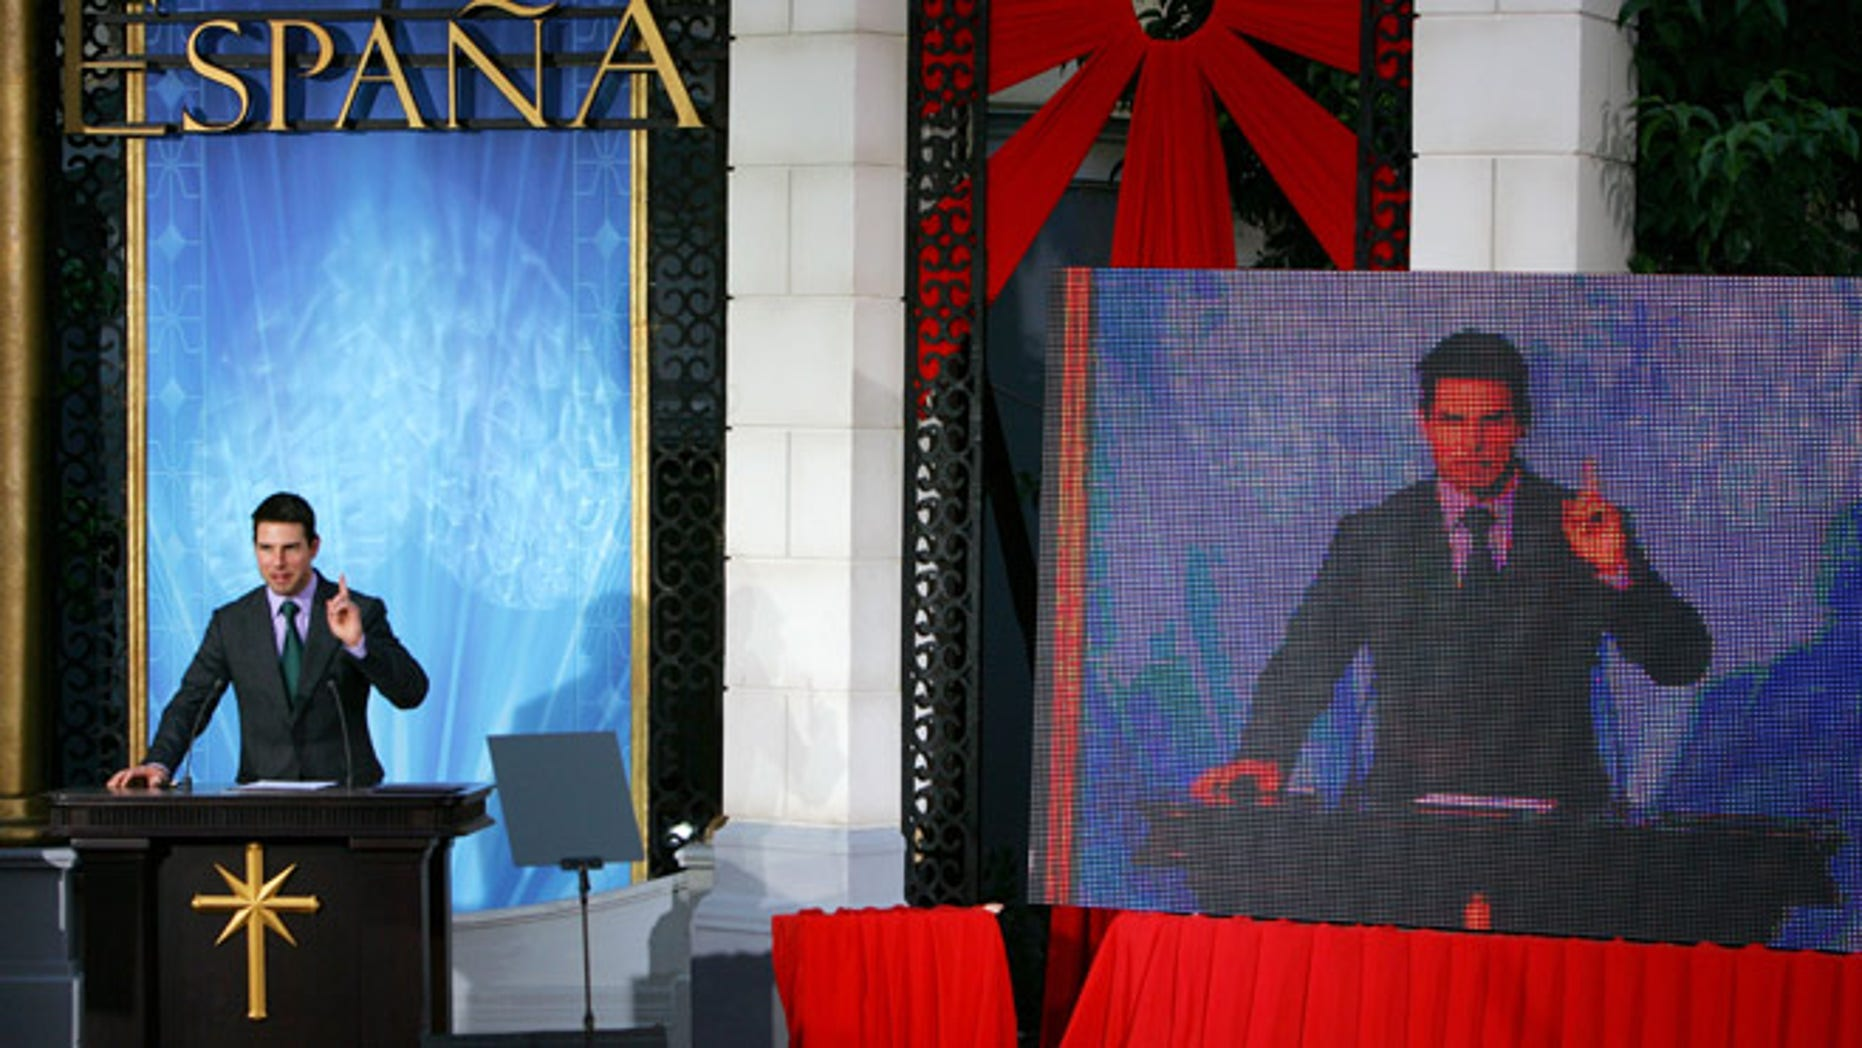 Tom Cruise gives a speech at the opening of a Scientology church in Spain in 2004.